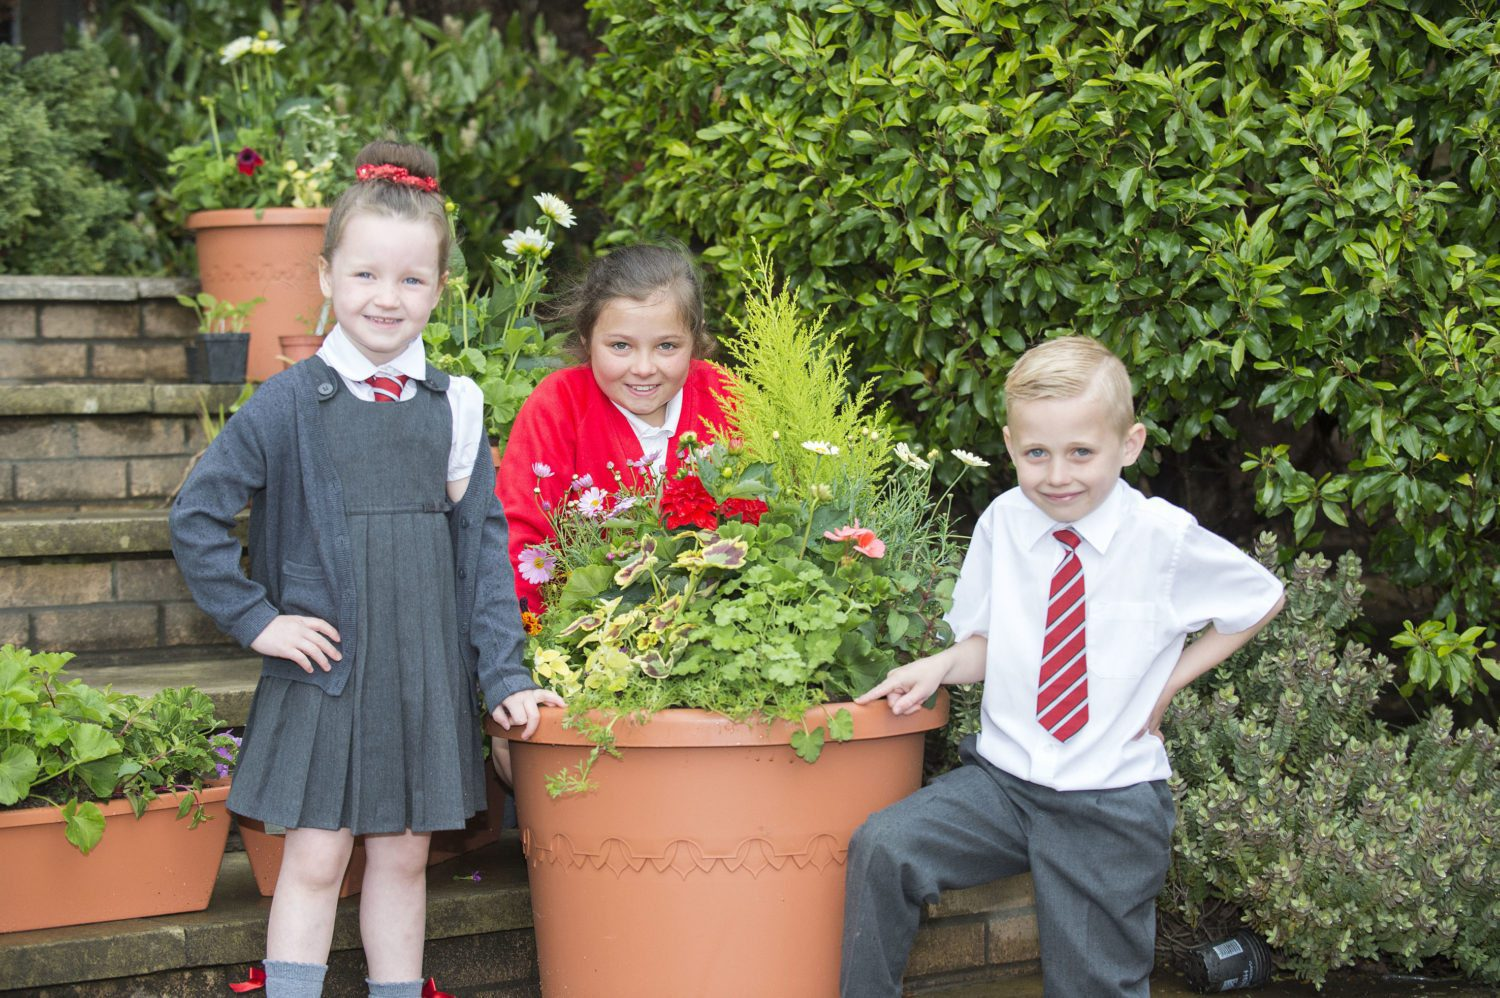 Captions Garden 1 pic: General manager at intu Braehead, Gary Turnbull with Caragh Moohan, aged five and six-year-old Kodey McDonald. Garden 2 pic: Pupils Caragh Moohan, aged five; Lucy McLay, aged nine and six-year-old Kodey McDonald enjoy their refurbished garden after it was vandalised. Thanks pic: Pupils at St Paul's Primary made 'thank you' cards for intu Braehead general manager, Gary Turnbull, second from left in back row and Drew Gallagher, a director with Cardwell Nurseries, left.